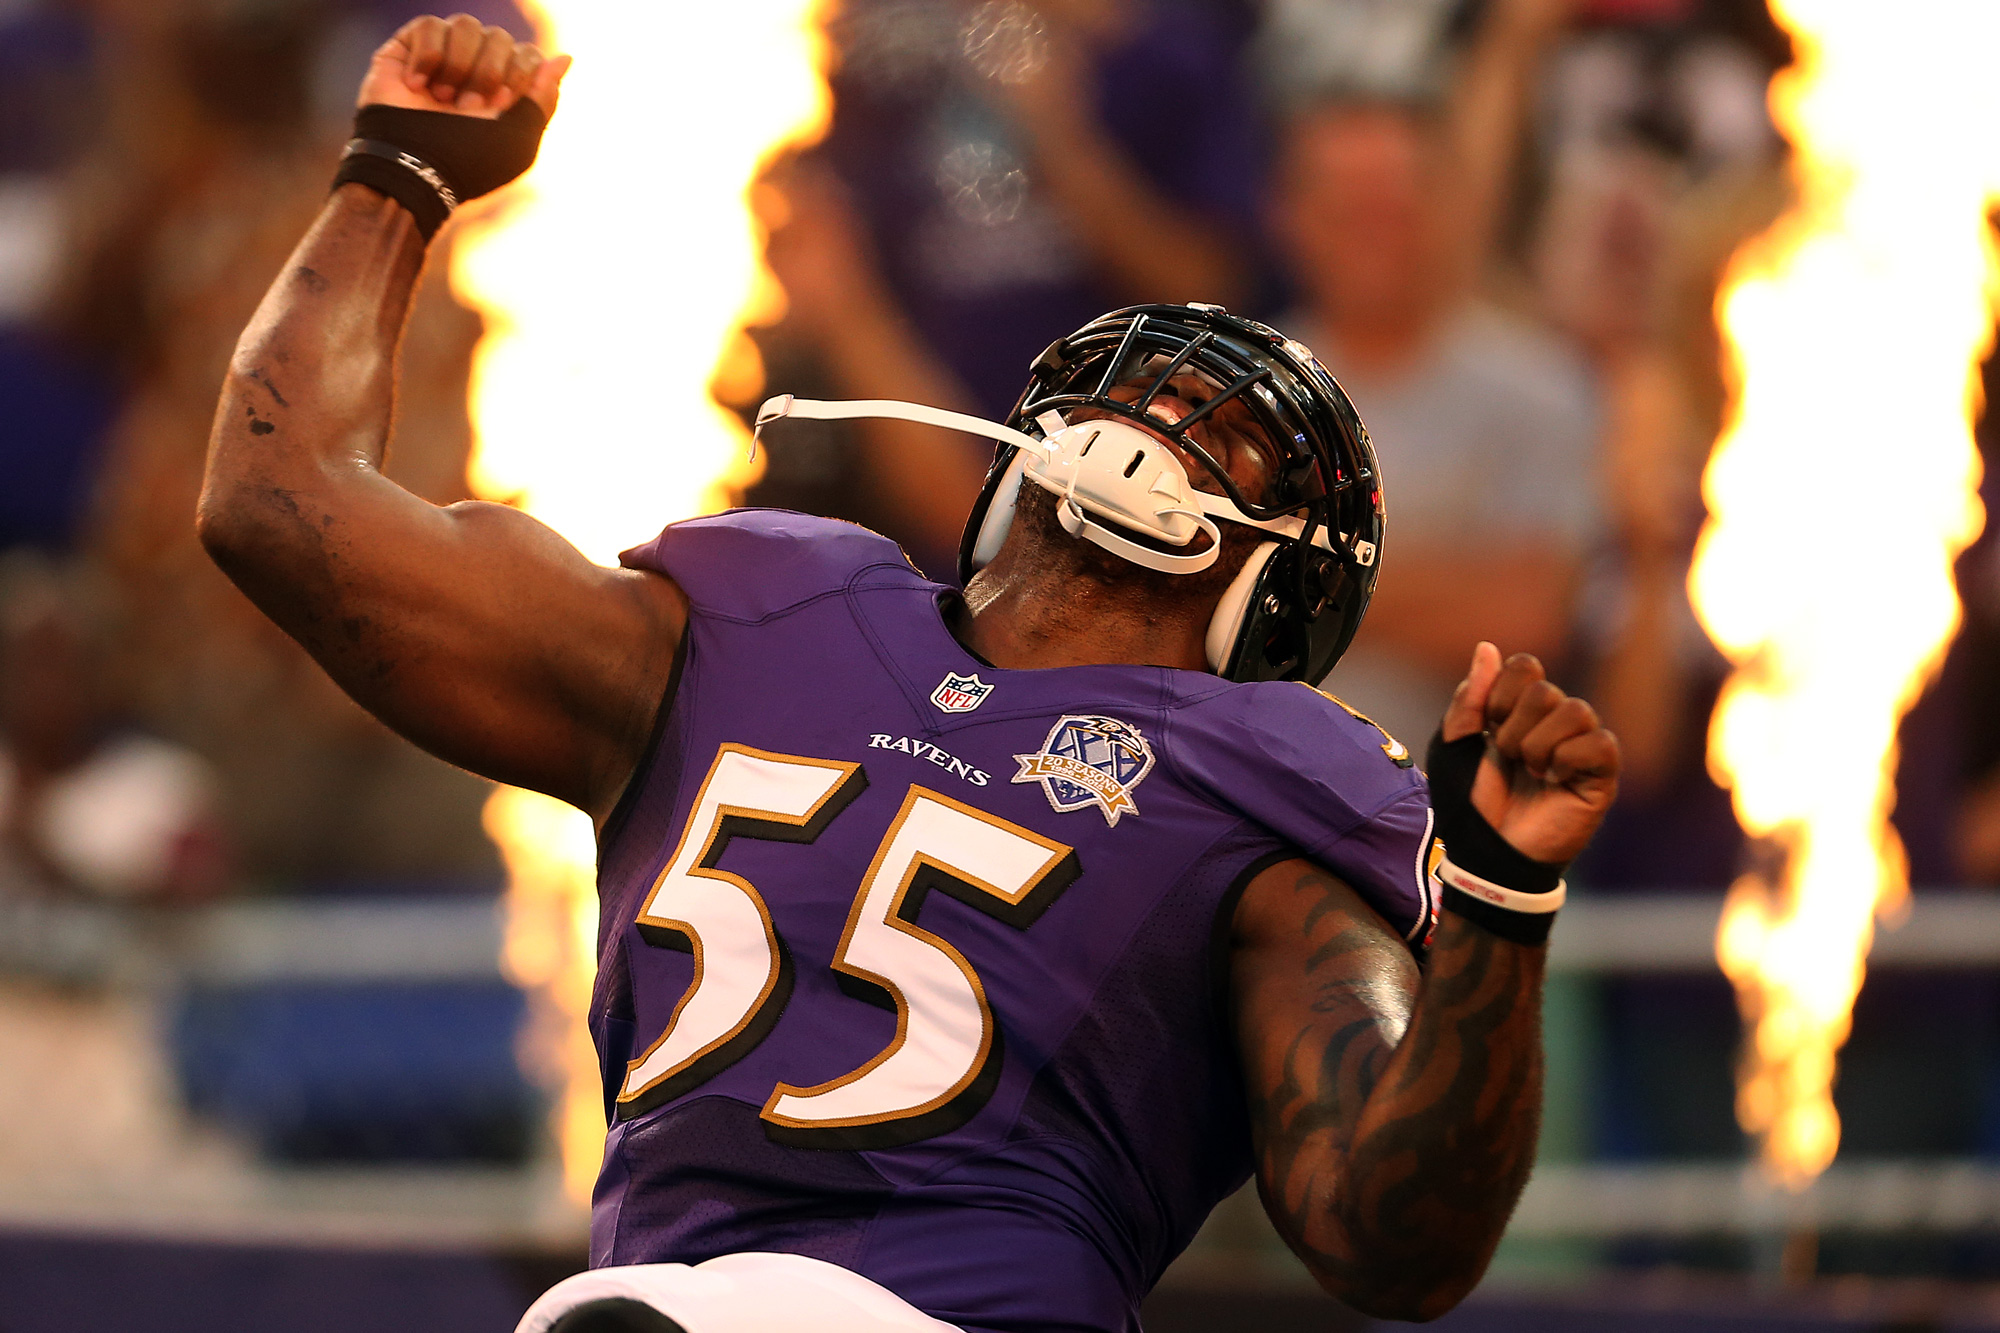 Outside linebacker Terrell Suggs #55 of the Baltimore Ravens is introduced prior to the start of a preseason game against the Washington Redskins at M&T Bank Stadium on August 29, 2015 in Baltimore, Maryland.